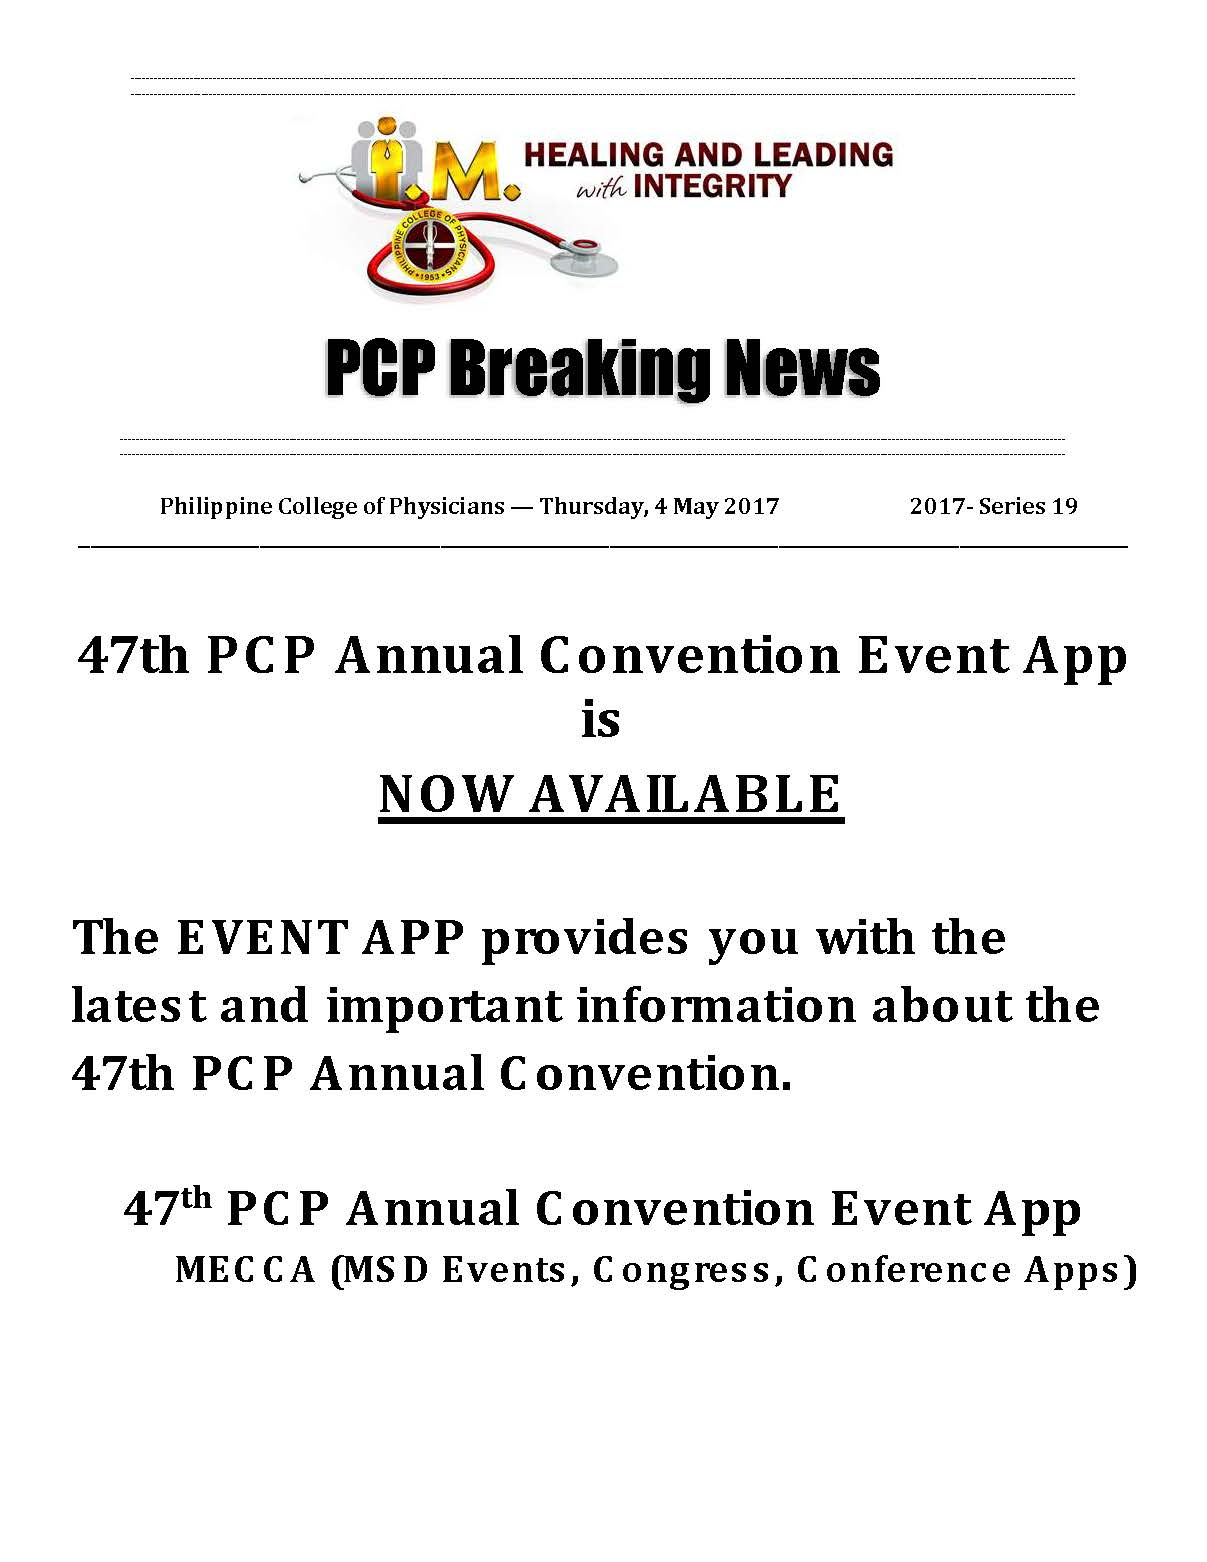 PCP Breaking News 47th AC event APP 04252017 Page 1